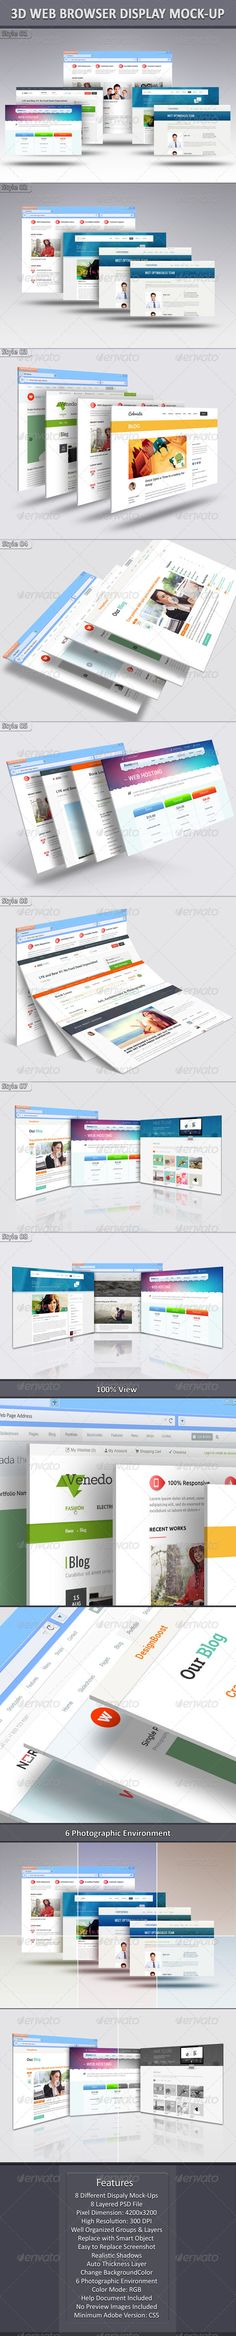 1000 images about website mock up on pinterest 3d web browser